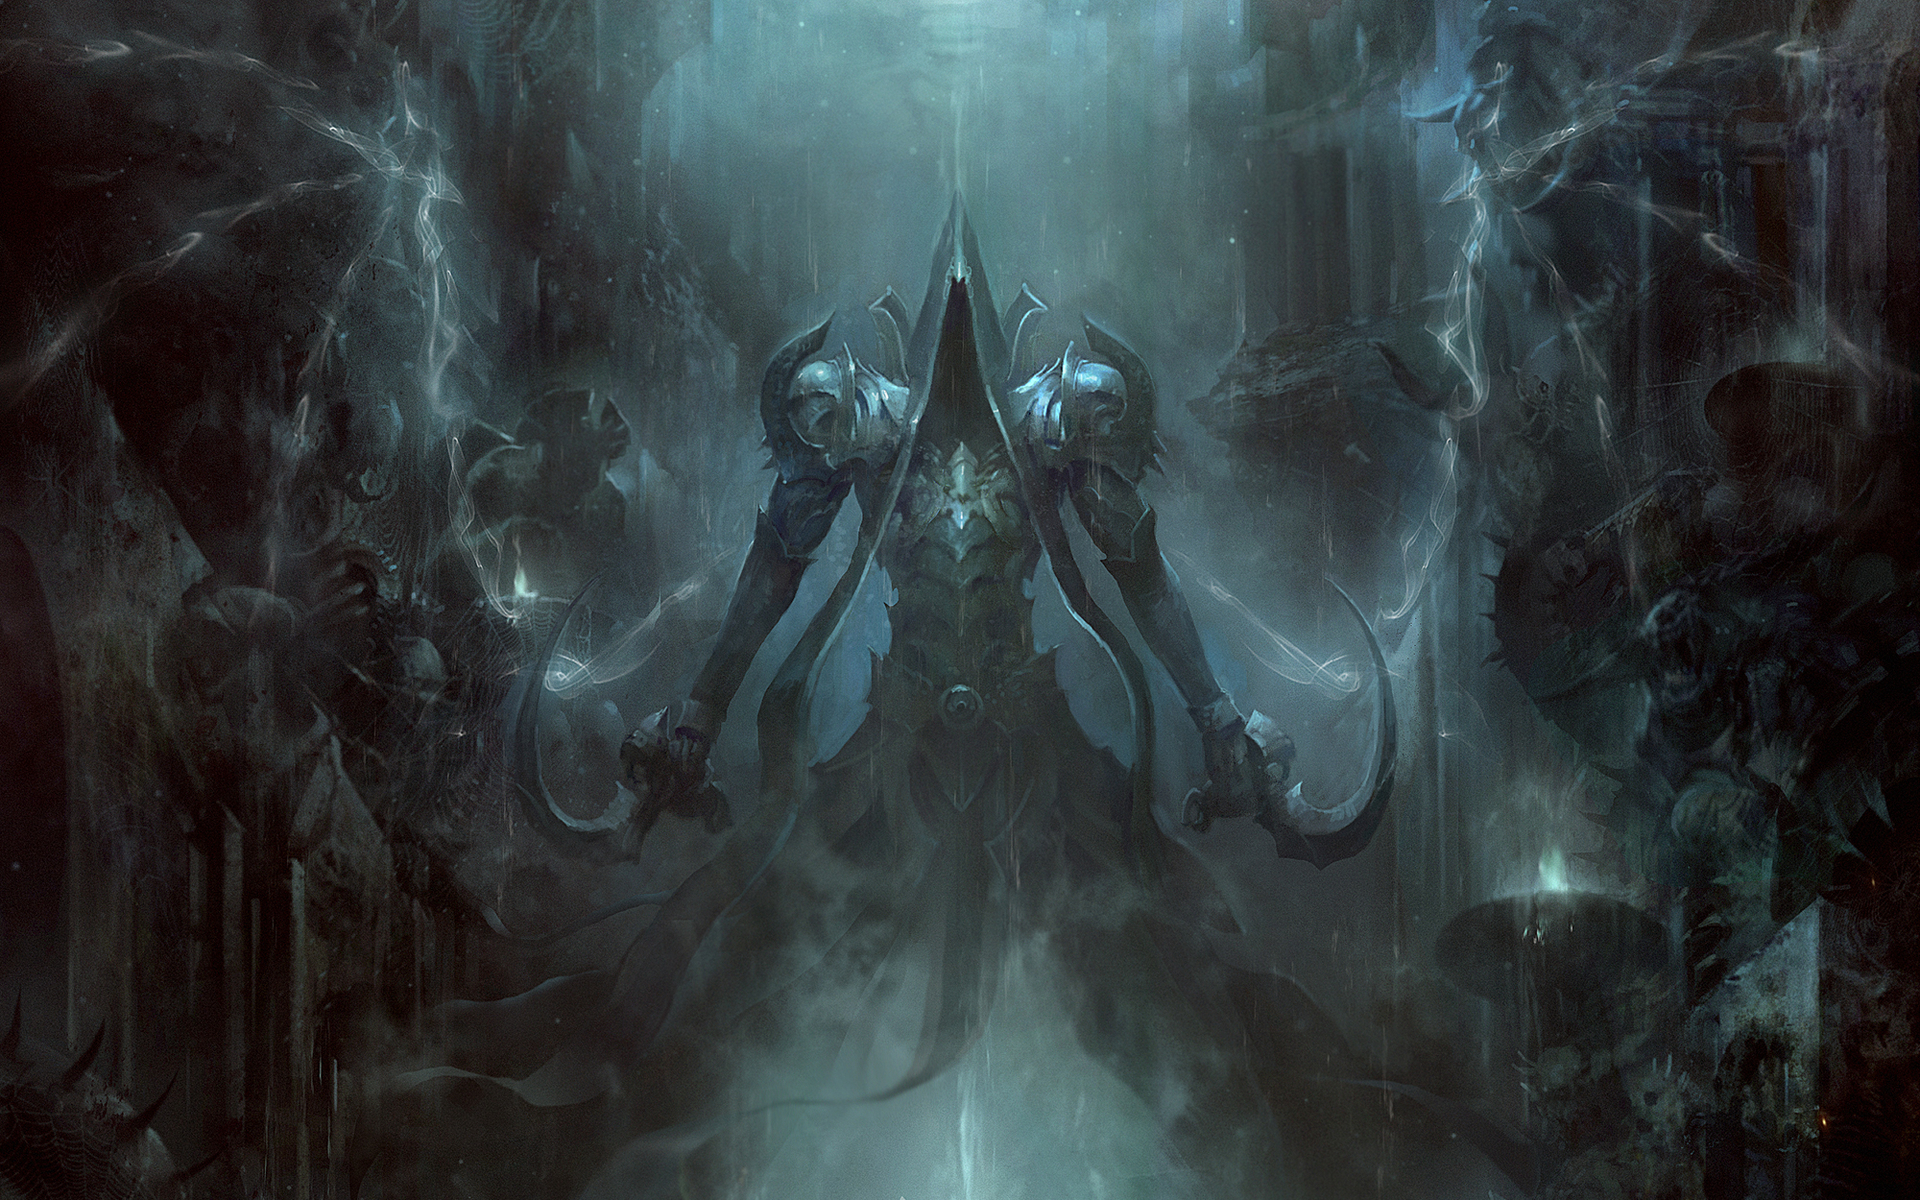 Diablo 3 Wallpaper 1920x1080: Among The Dead Full HD Wallpaper And Background Image